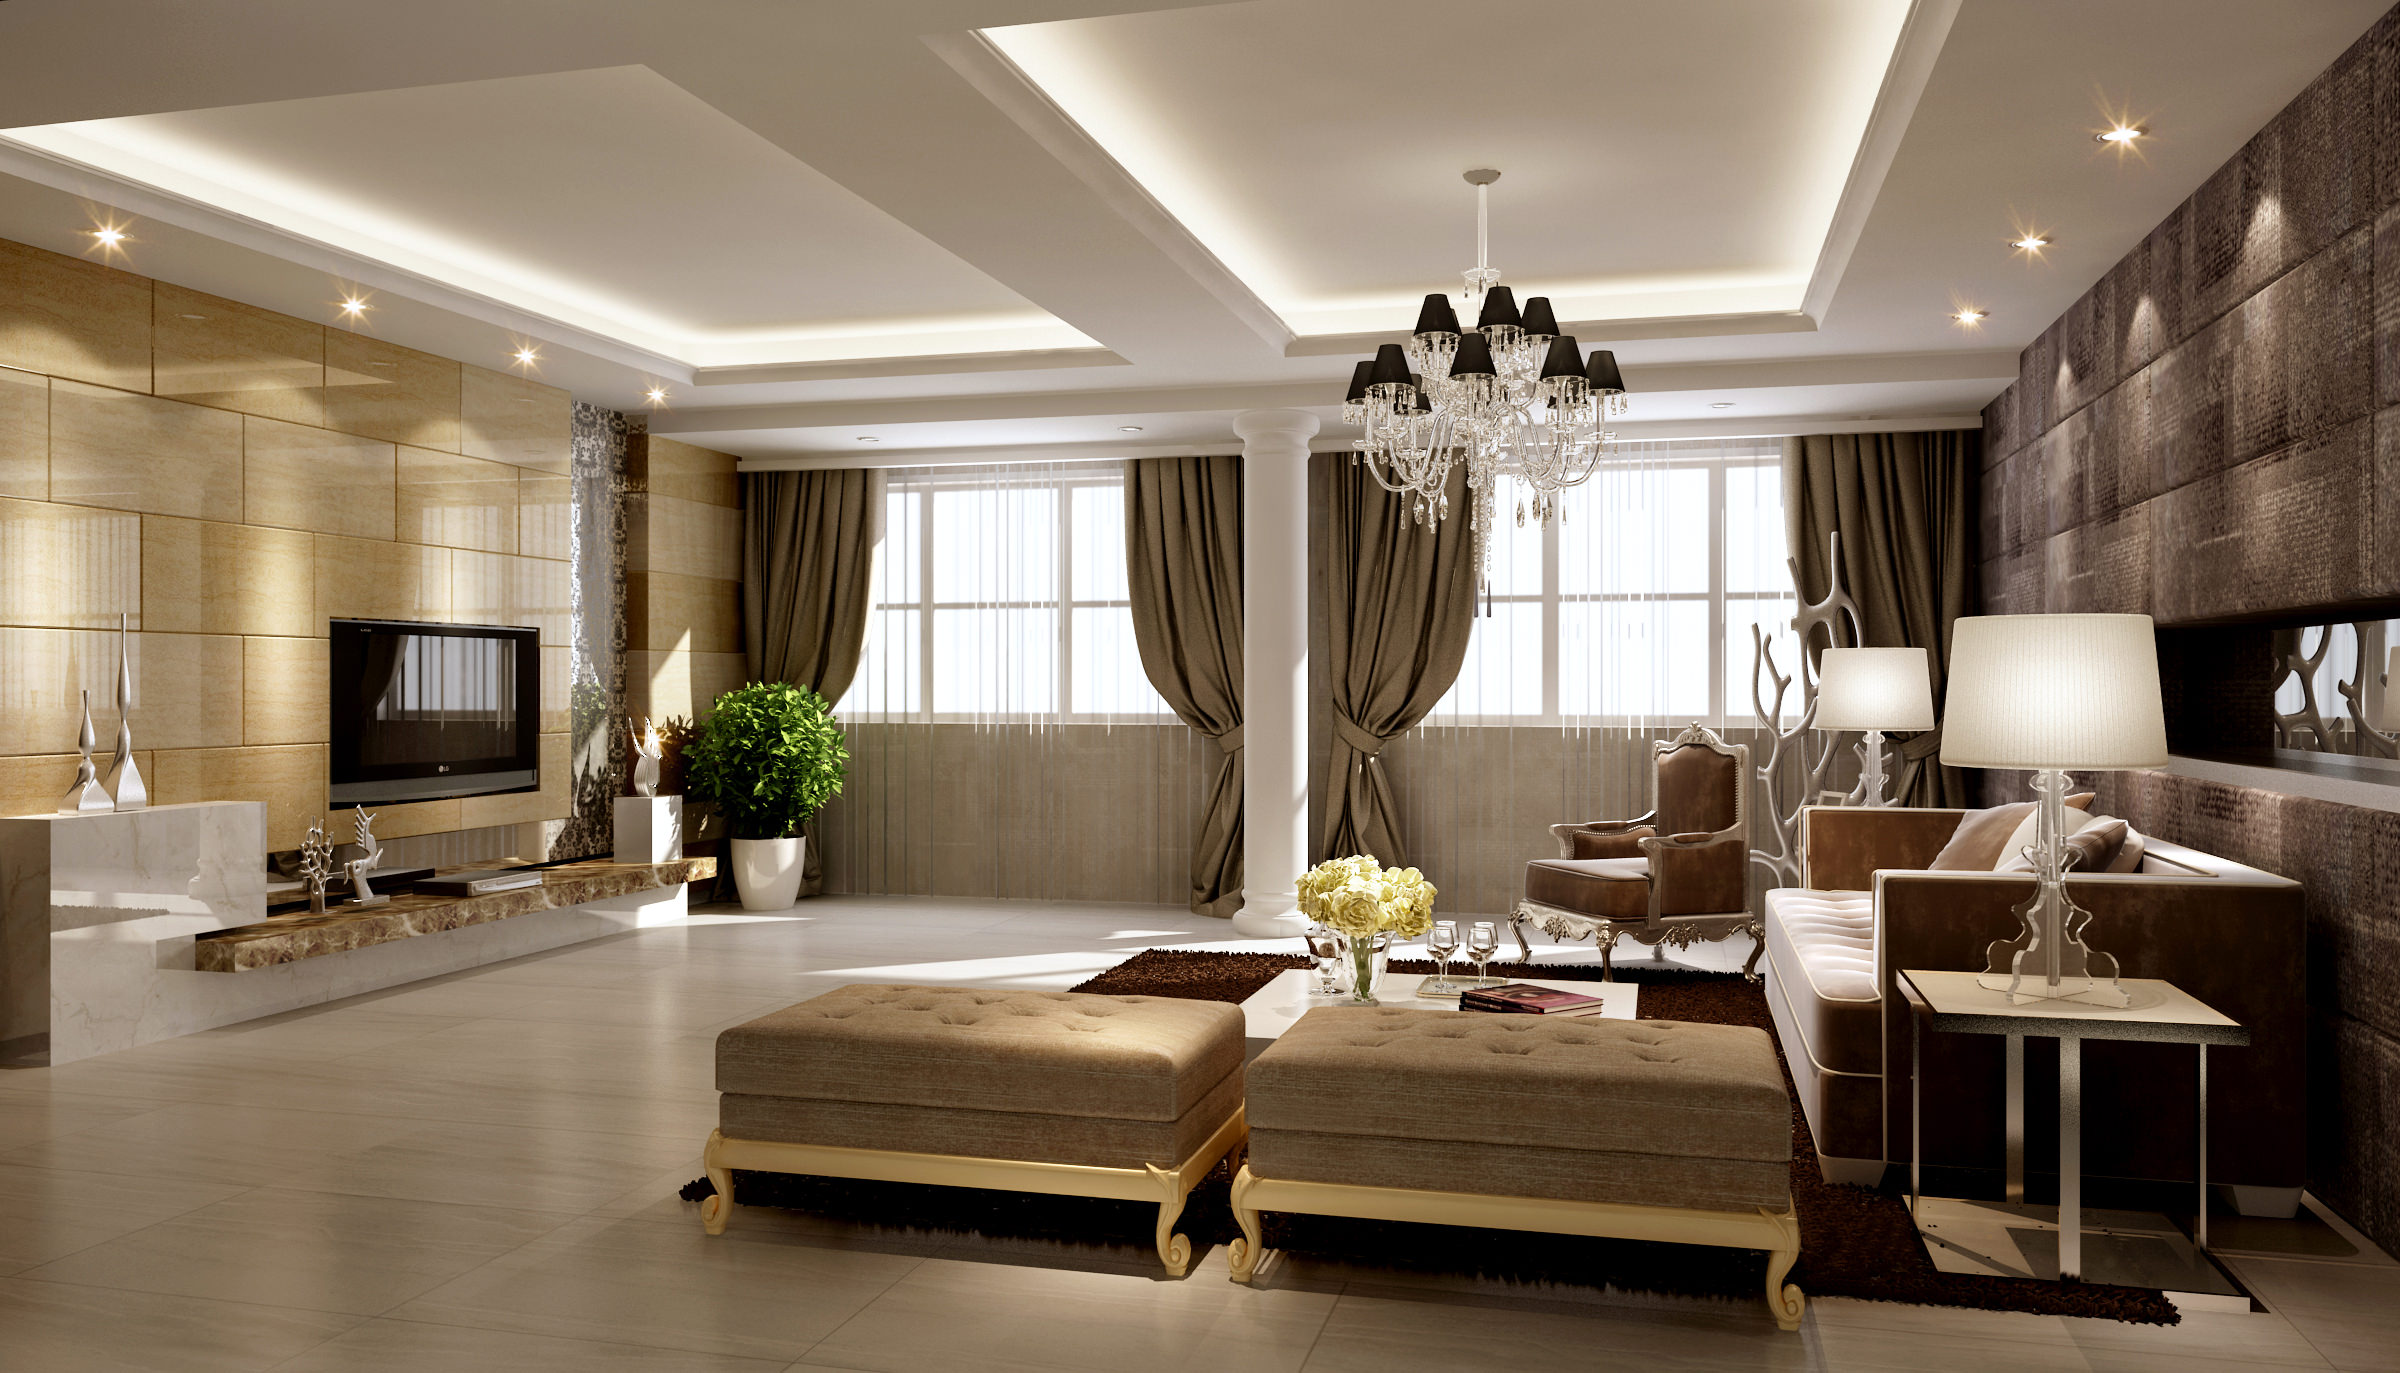 3d Living Room Designer. Collection Living Room And Bedroom 3d Model Max 8  Collection Living